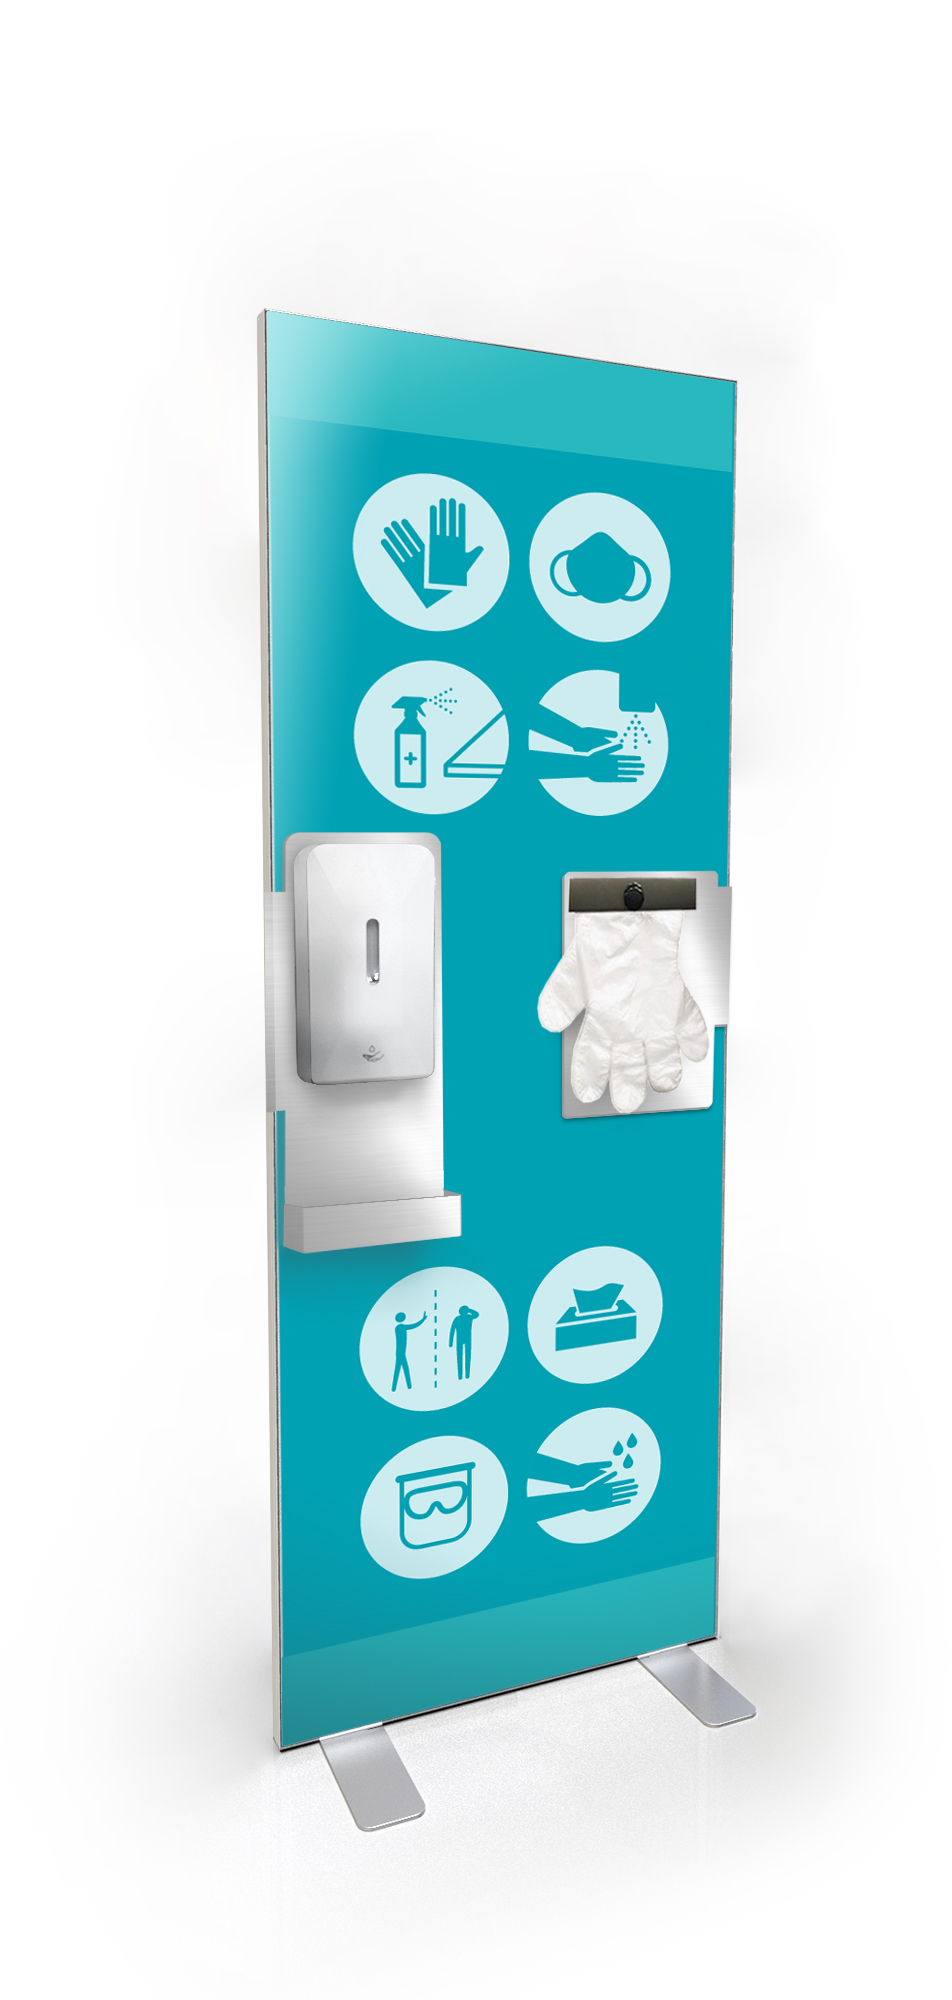 Automatic Hand Sanitiser Station with gloves dispenser- Coronavirus Covid19 Essentialswww.ontimeprint.co.uk